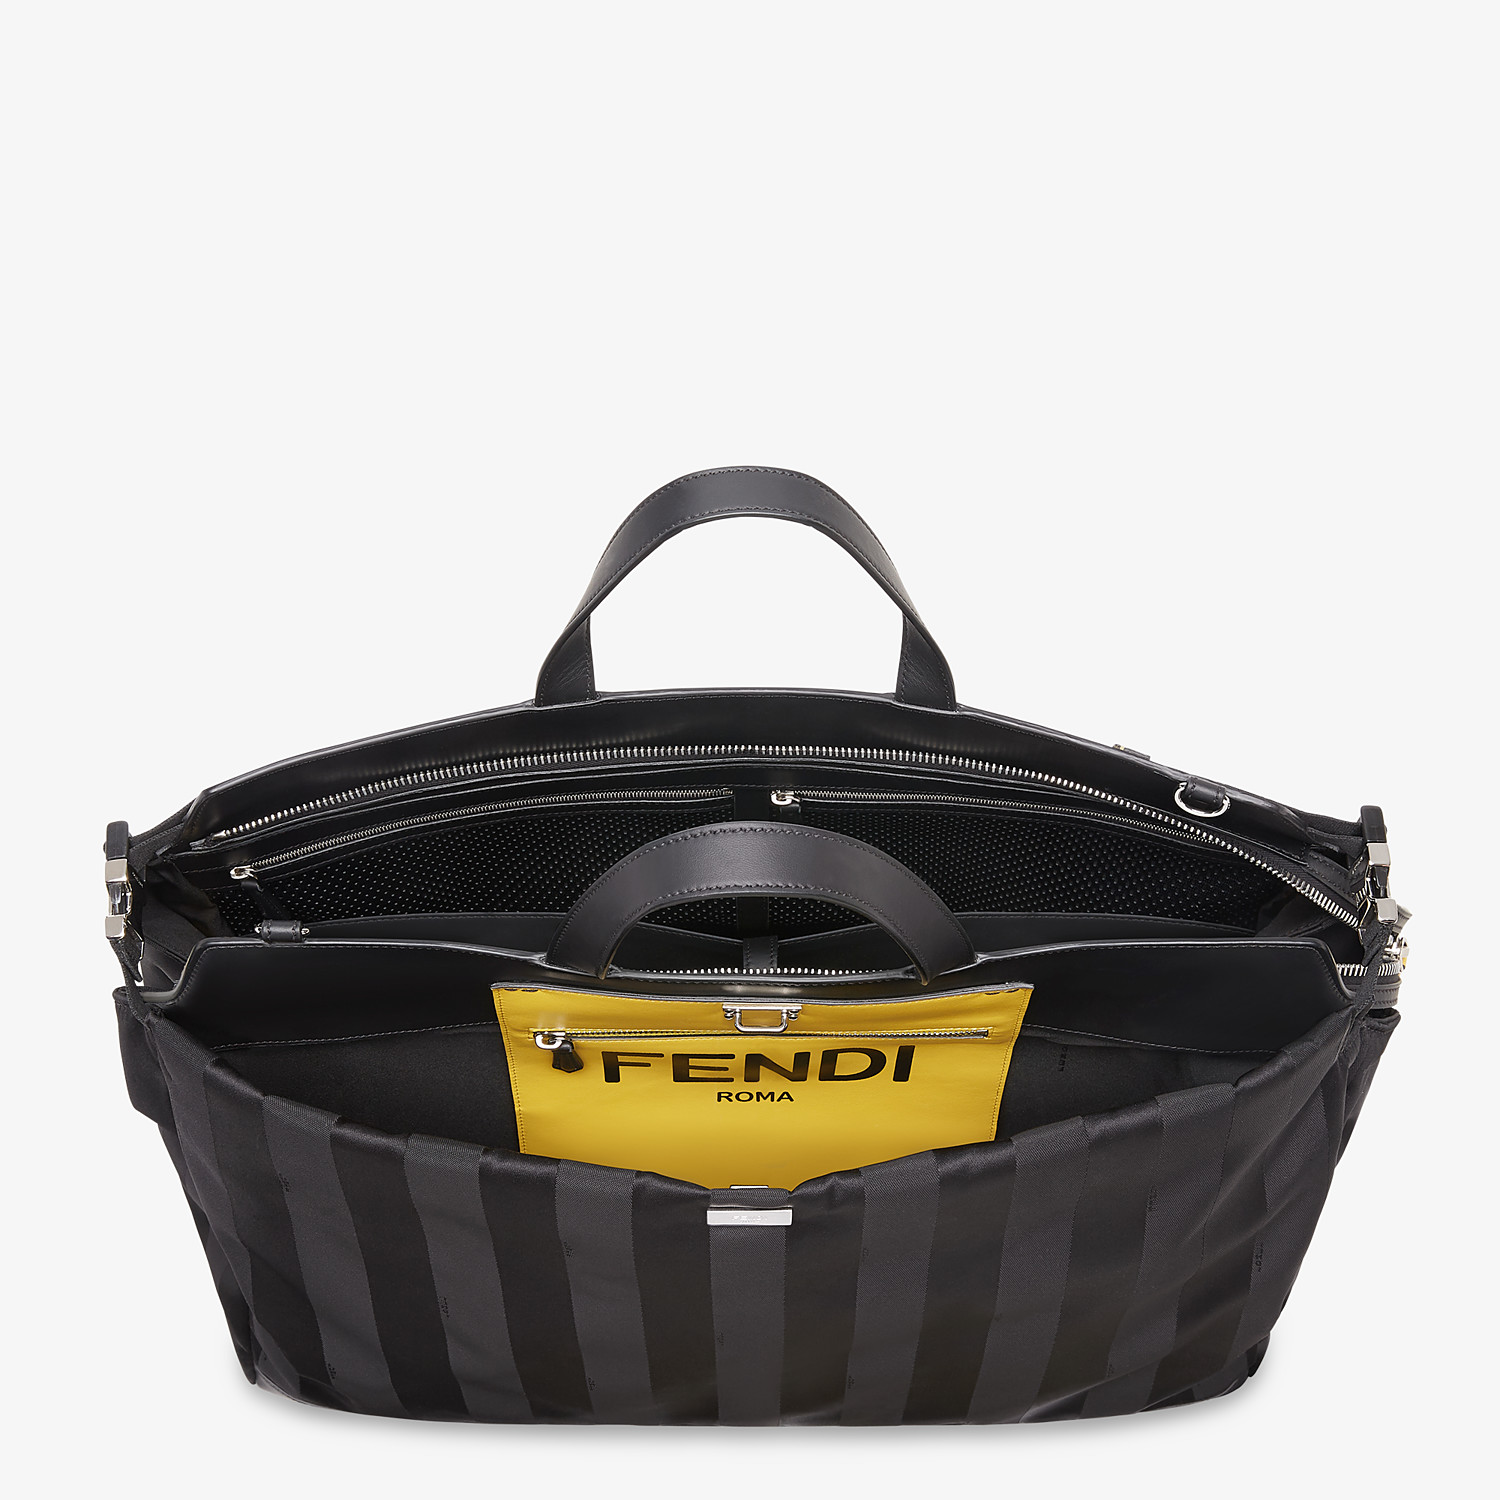 FENDI PEEKABOO ICONIC LARGE - Black nylon bag - view 5 detail